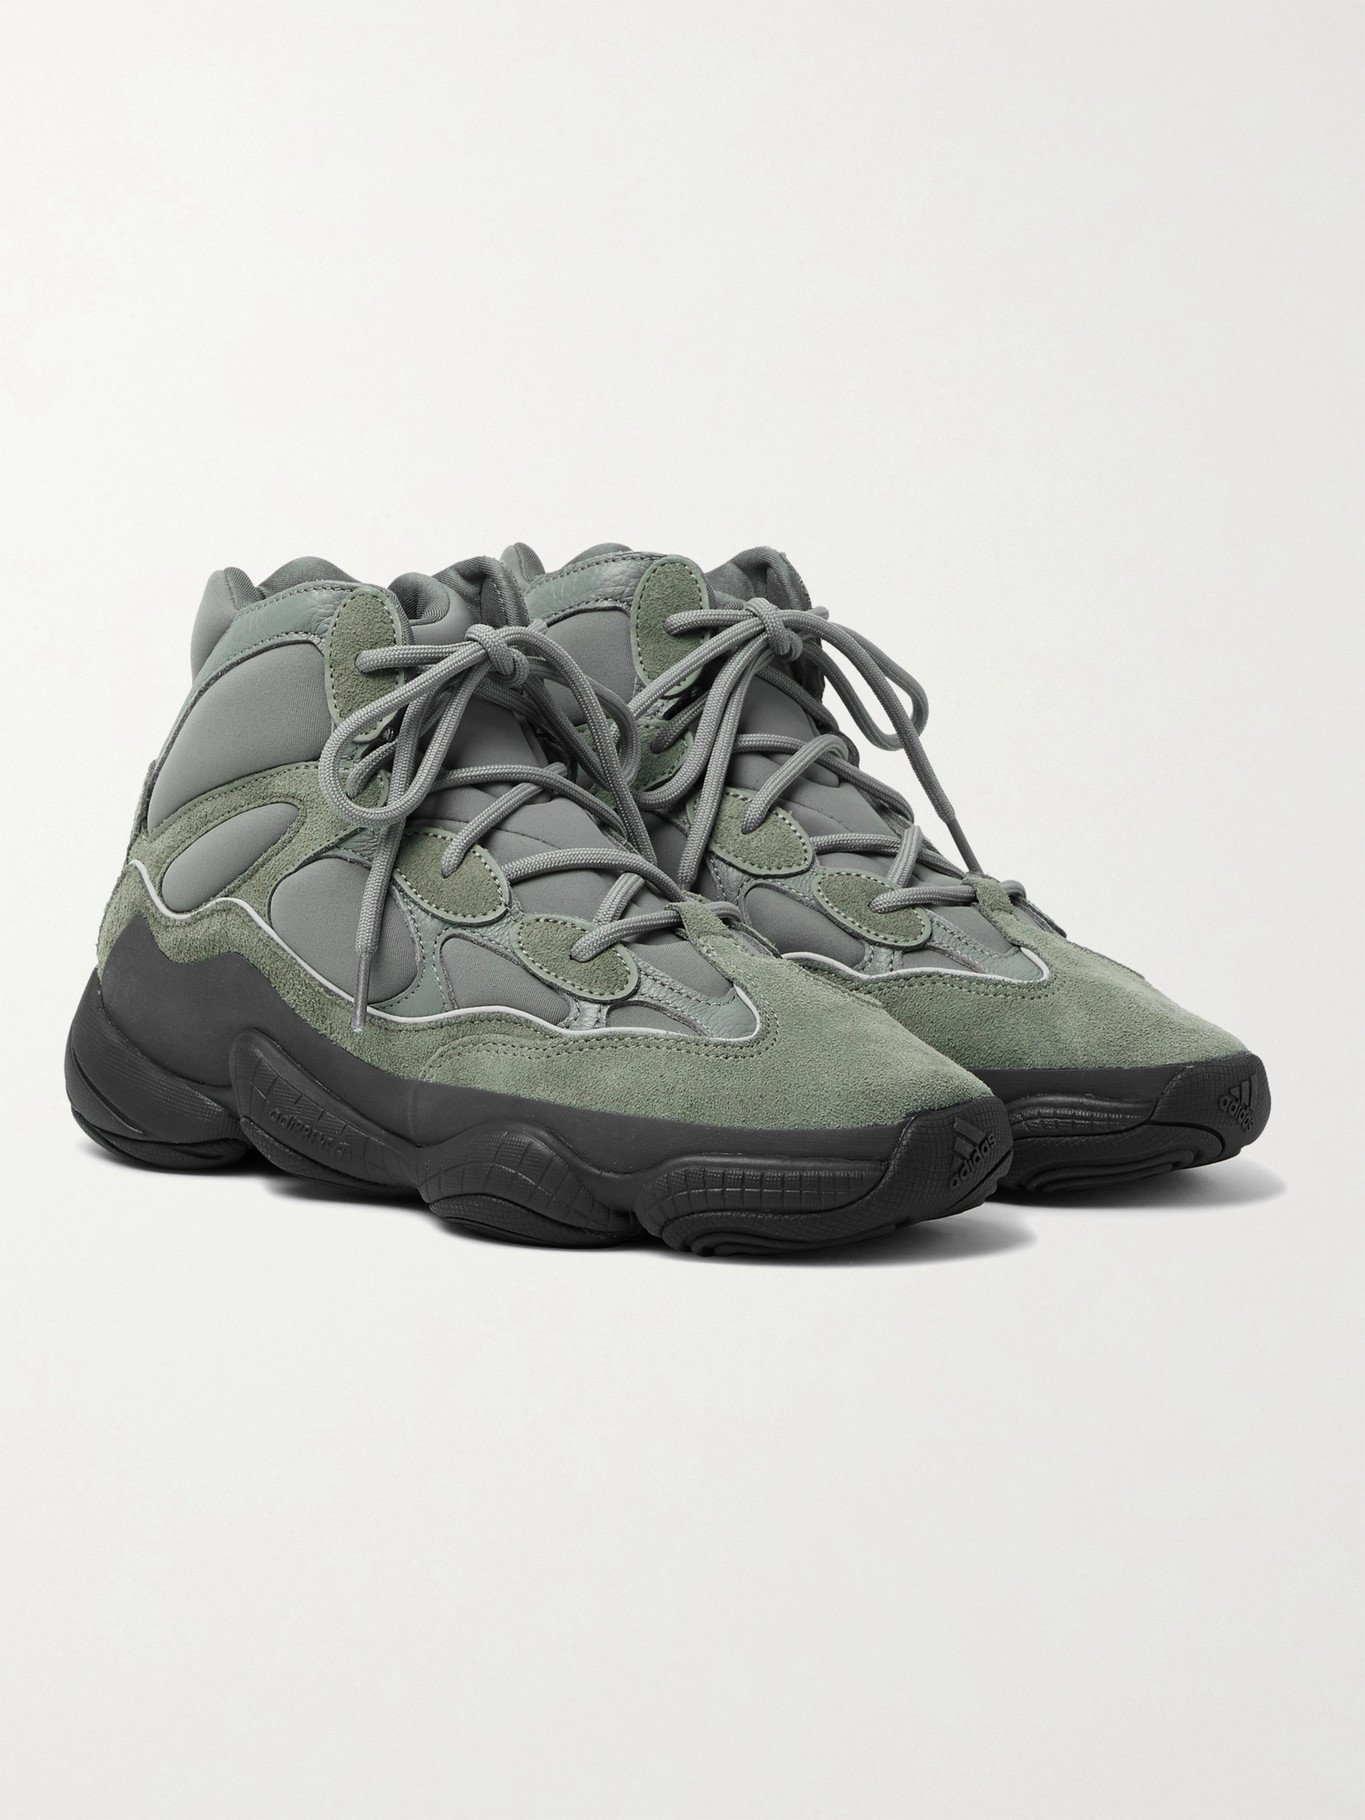 Photo: ADIDAS ORIGINALS - Yeezy 500 Neoprene, Suede and Leather High-Top Sneakers - Gray